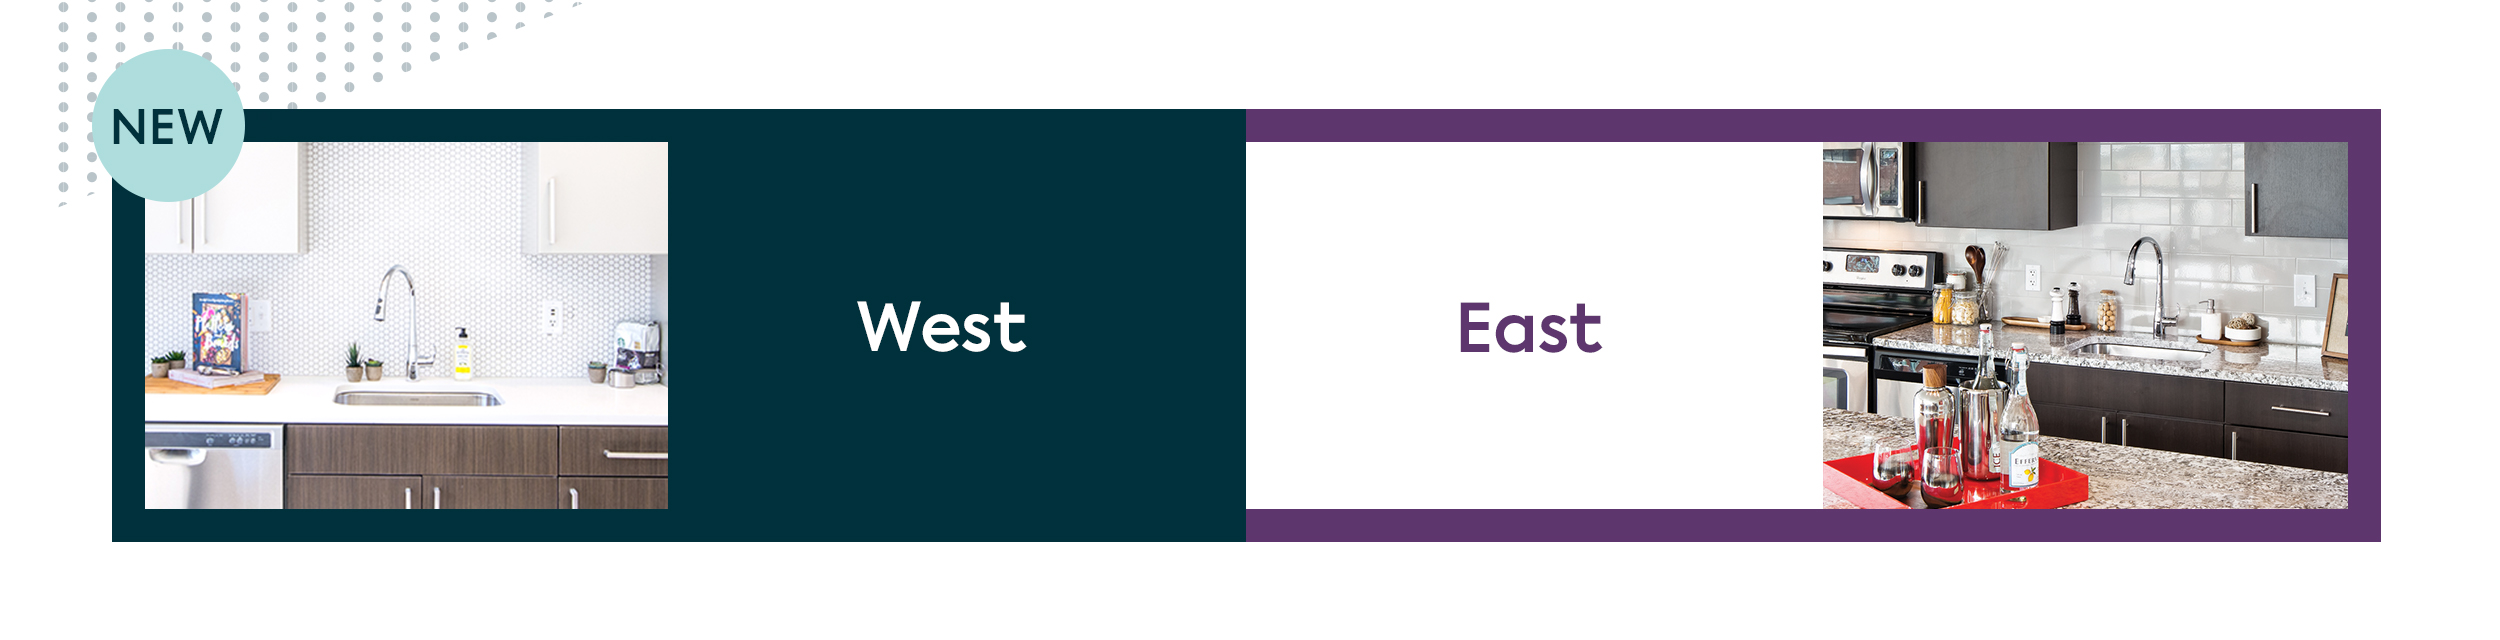 split image with the photo of kitchen with white counters, white cabinets on top and dark cabinets on bottom and the word, West in a greenish blue rectangle and a circle with the word, New overlaid on top to the left, and on the right is the word, East set in purple on white background with a purple border next to a photo of a kitchen with quartz counters and dark cabinets top and bottom